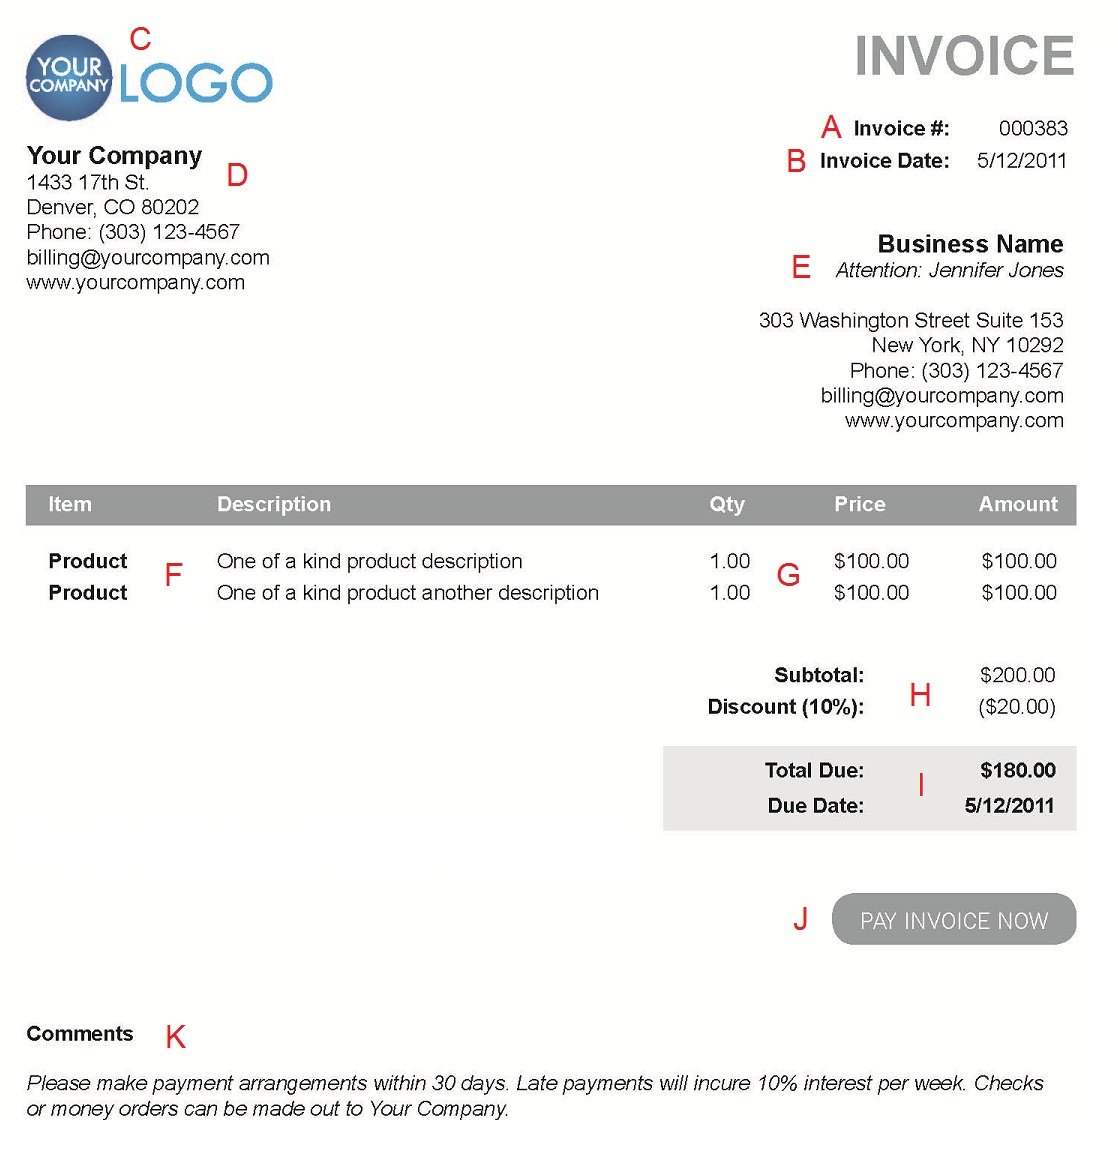 Coolmathgamesus  Unique The  Different Sections Of An Electronic Payment Invoice With Marvelous A  With Awesome Nm Gross Receipts Also Where Is The Tracking Number On A Fedex Receipt In Addition What Is A Depository Receipt And Bluetooth Receipt Printer For Ipad As Well As Home Depot Email Receipt Additionally Buffalo Wild Wings Receipt From Paysimplecom With Coolmathgamesus  Marvelous The  Different Sections Of An Electronic Payment Invoice With Awesome A  And Unique Nm Gross Receipts Also Where Is The Tracking Number On A Fedex Receipt In Addition What Is A Depository Receipt From Paysimplecom